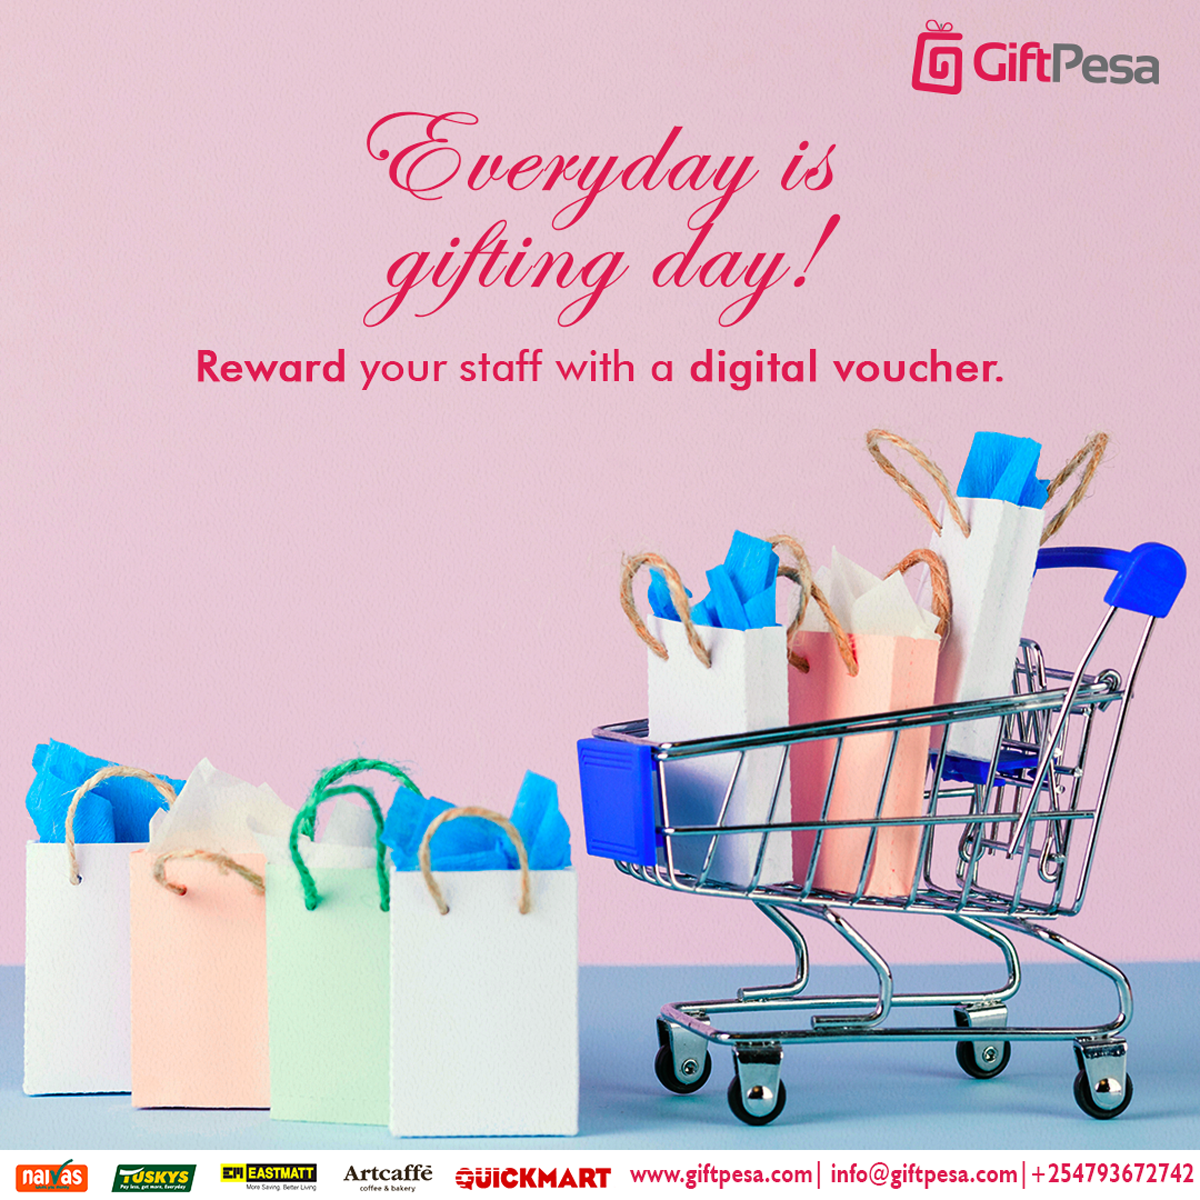 Shopping with a digital voucher